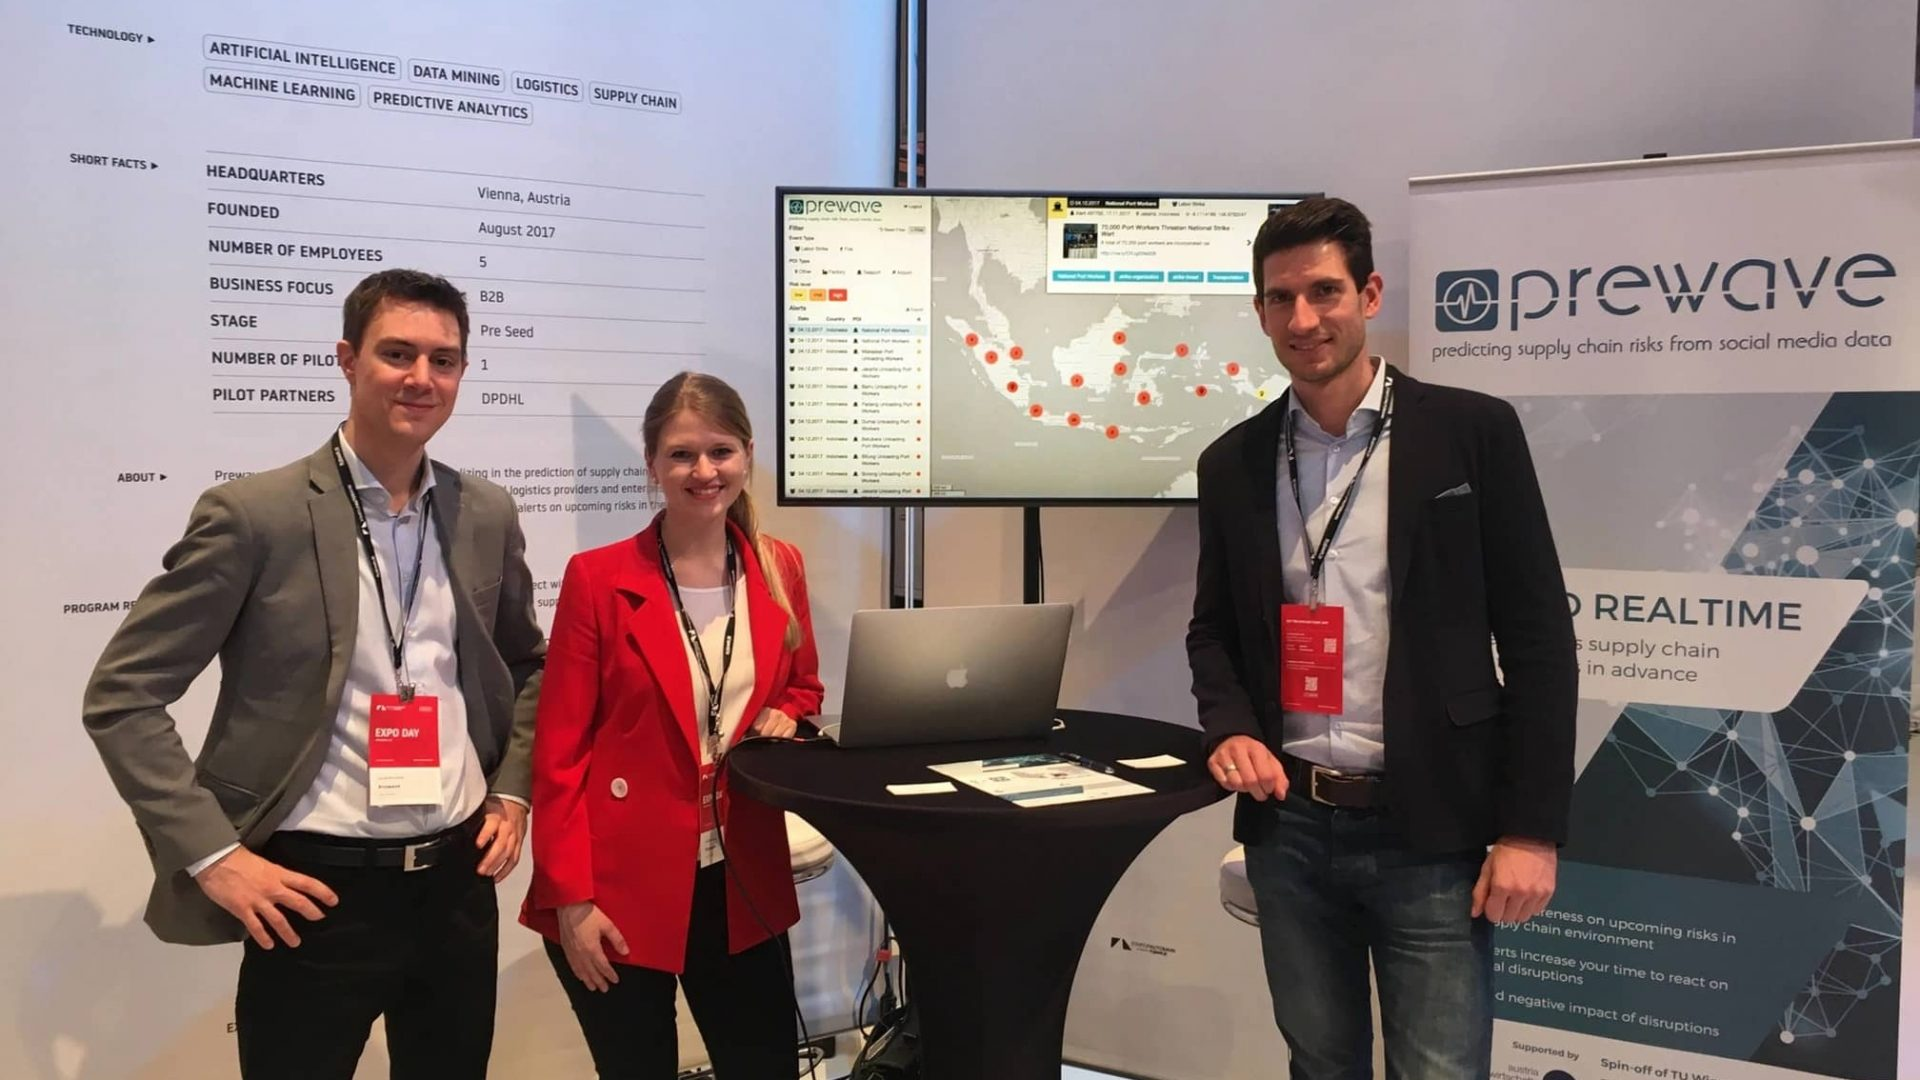 The Prewave team presenting their pilot project with DHL at StartupAutobahn in Stuttgart